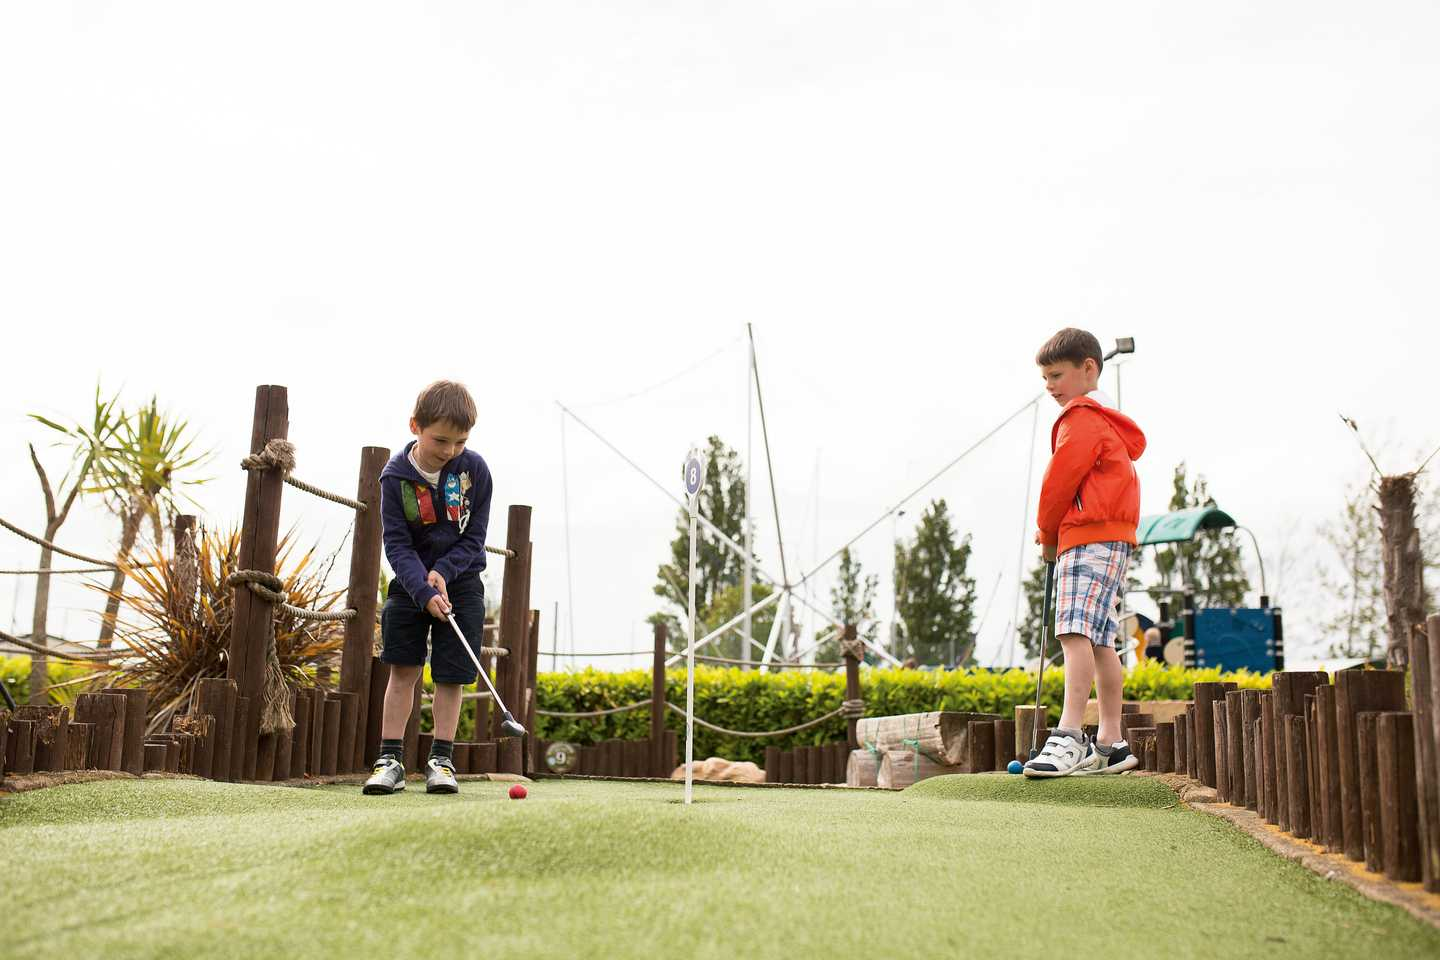 Children playing at the adventure golf course at Rockley Park